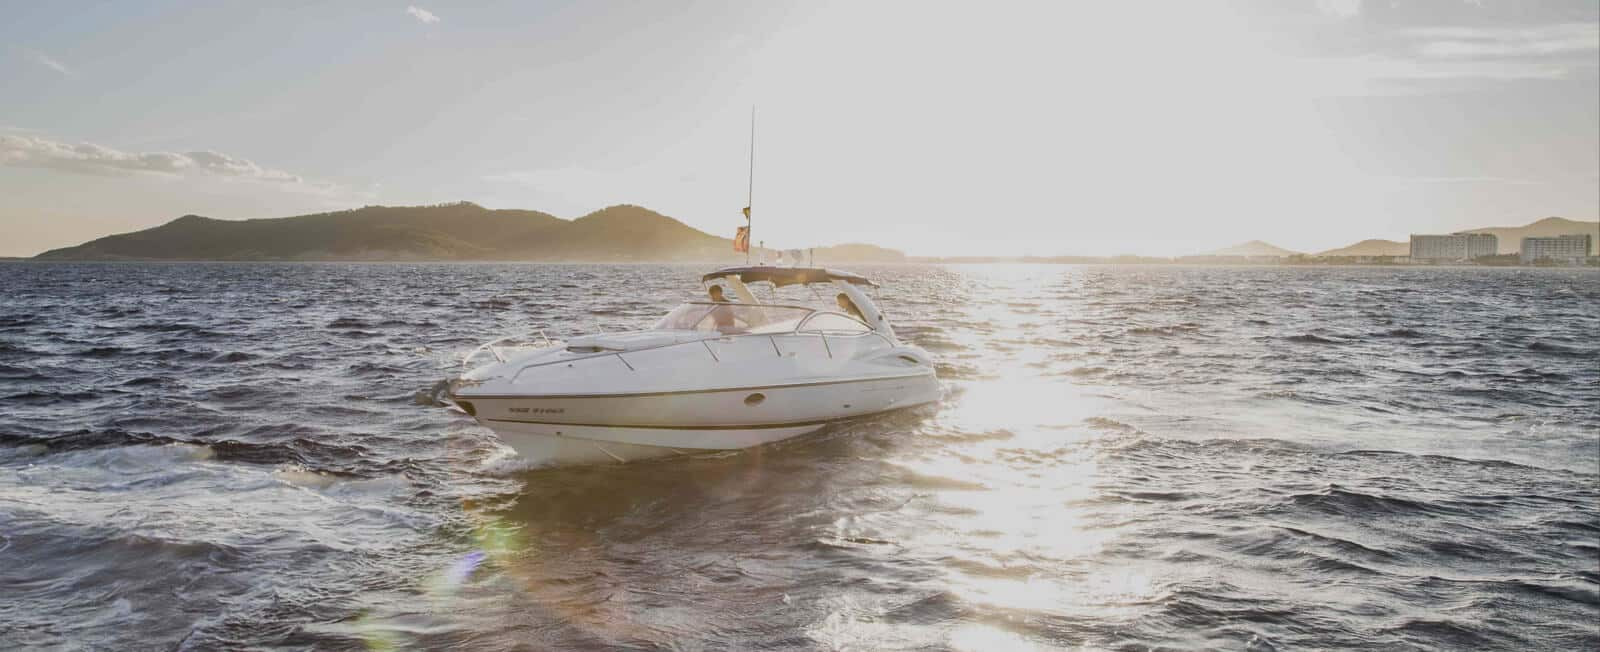 Smart Charter - The Largest Boat Rental Company in Ibiza